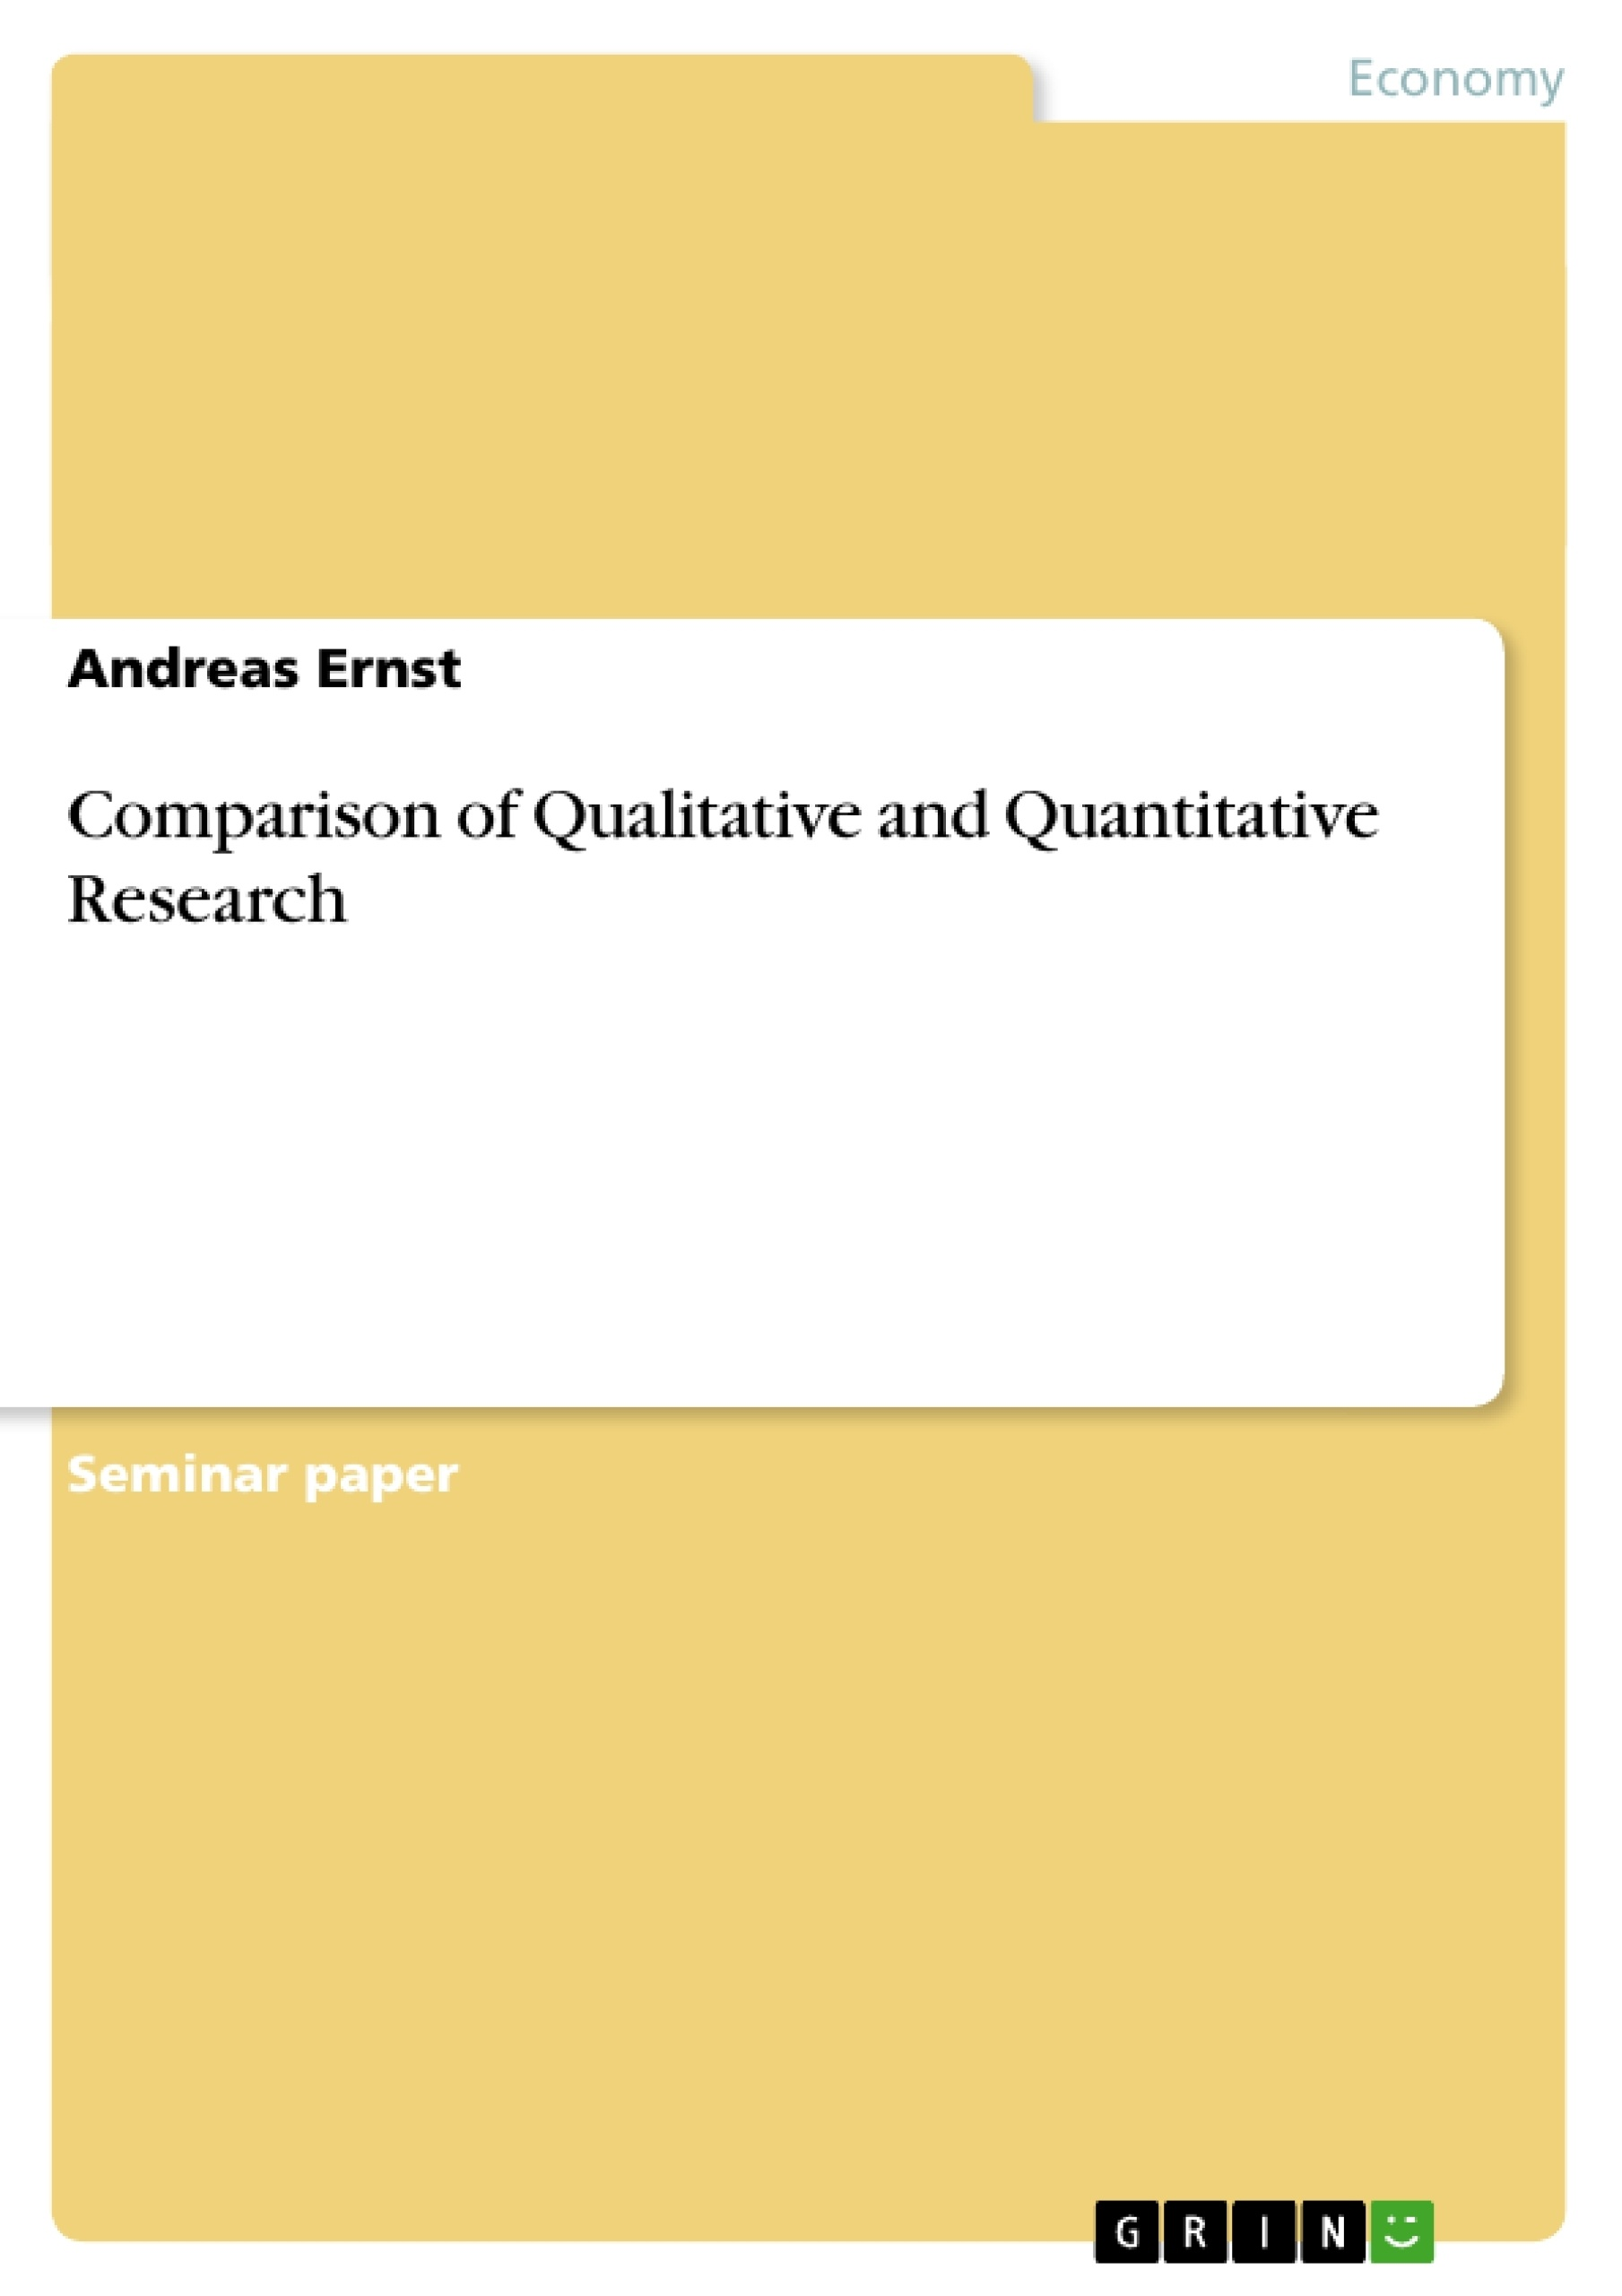 Qualitative essay